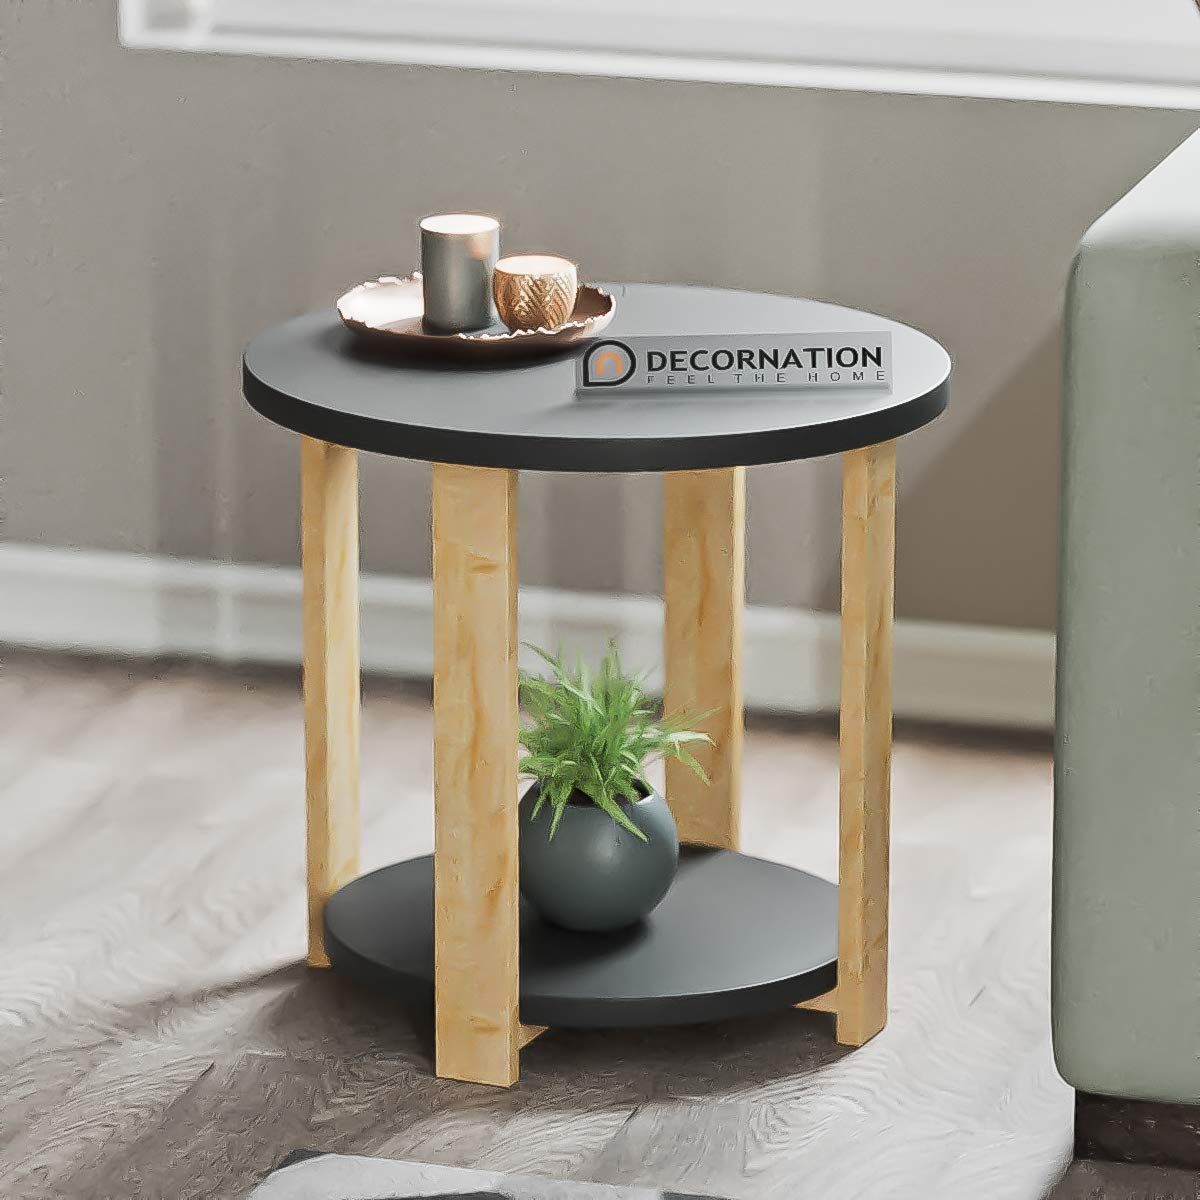 Decornation Juno Modern Round Side Table Mdf End Table With Storage Shelf For Living Room Bedroom Office Furniture Black With Natural Legs Buy Online In Dominica At Dominica Desertcart Com Productid 177598516